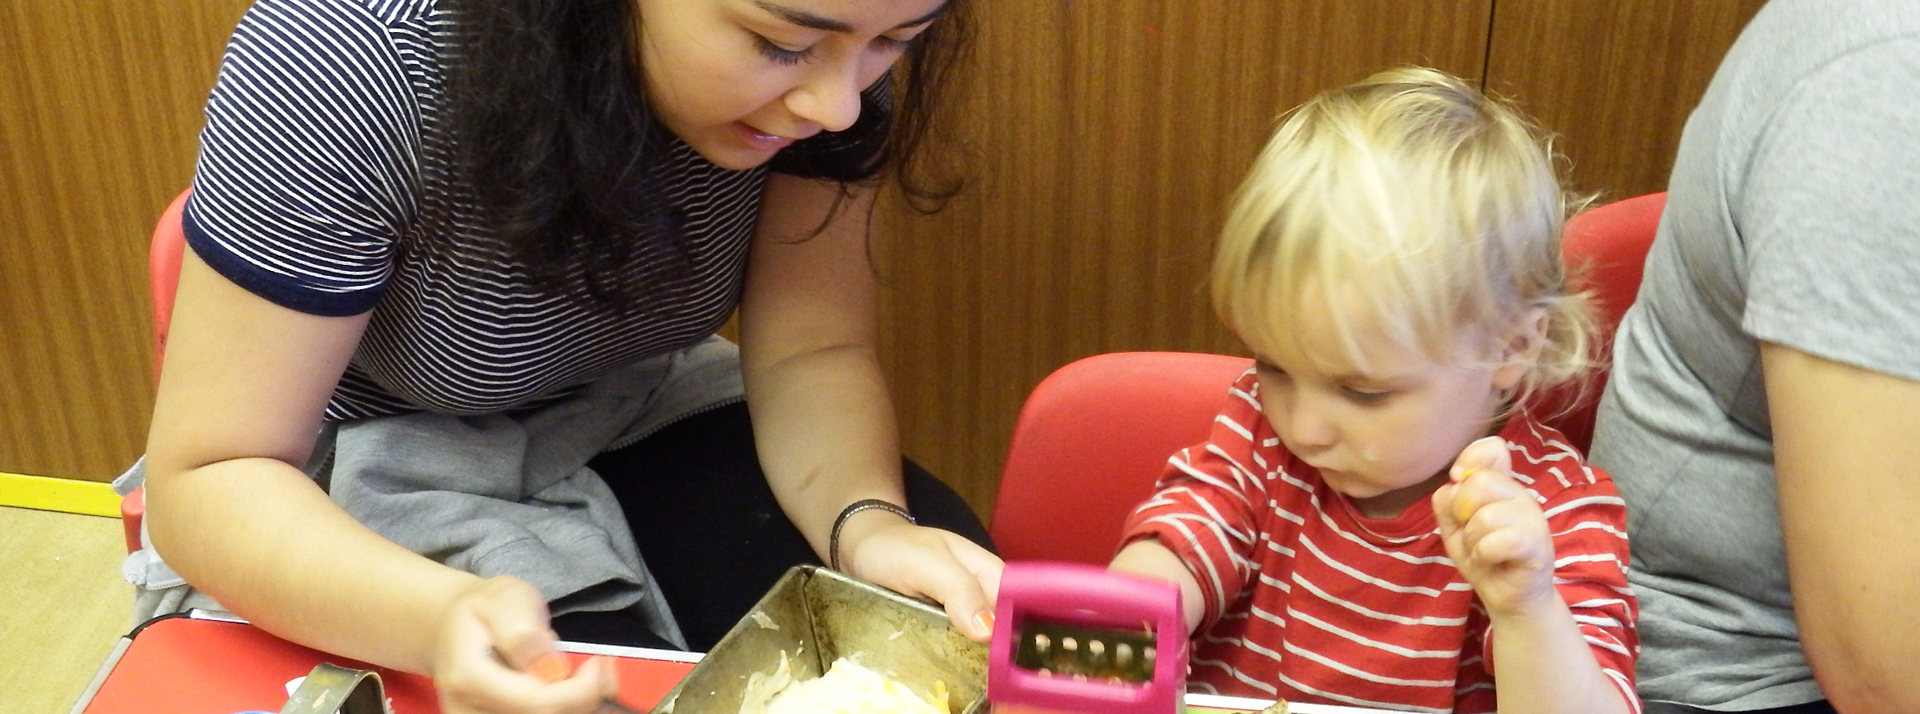 Borrow toys and stay & play!Toy Libraries